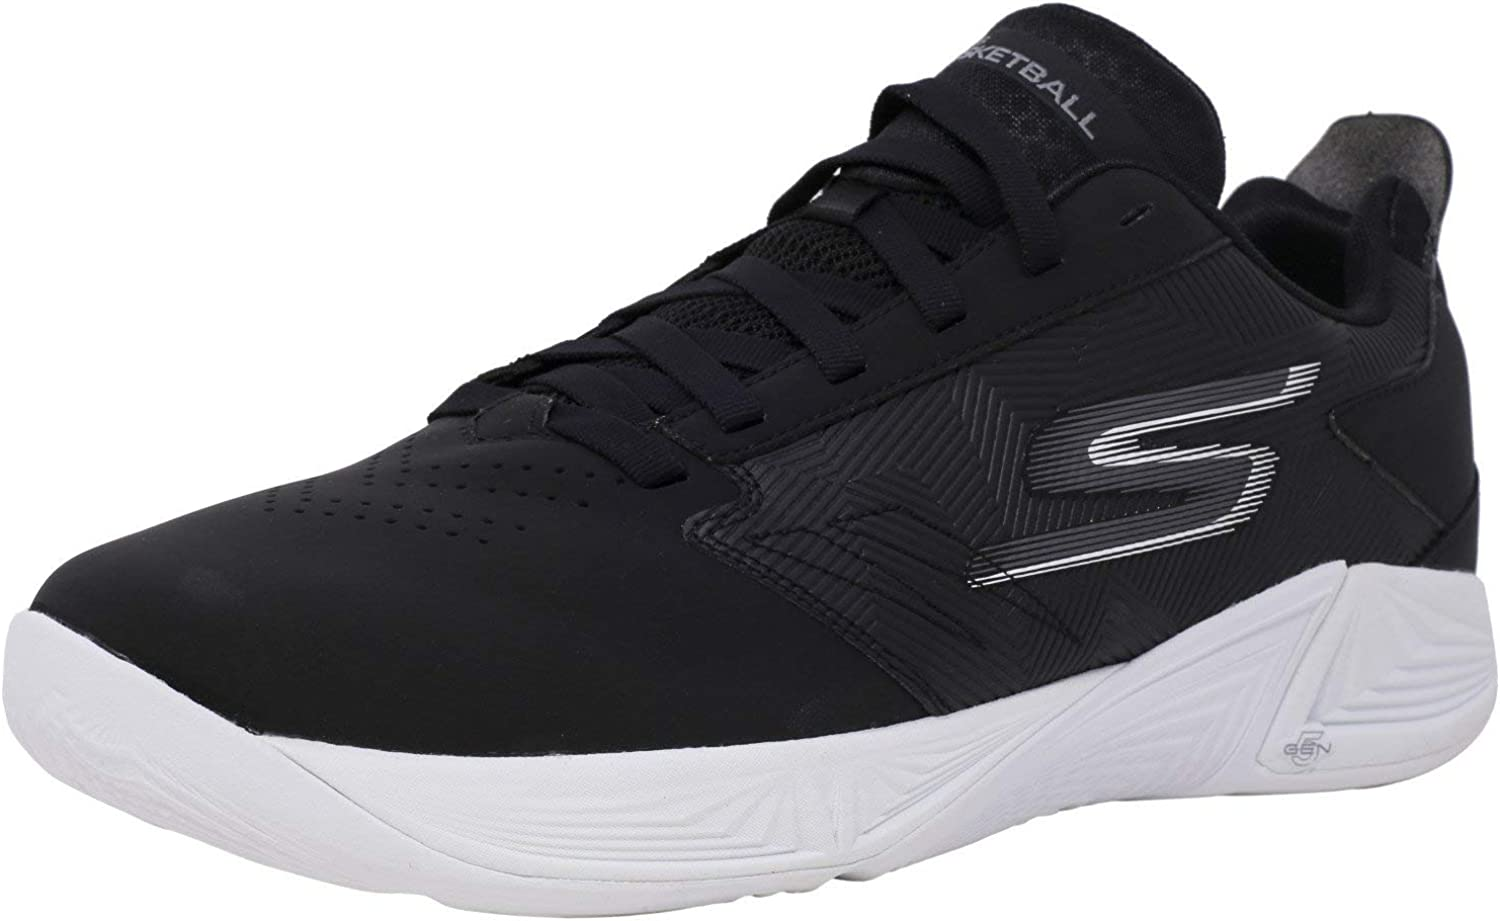 Skechers Men's Torch - Lt Ankle-High Basketball shoes